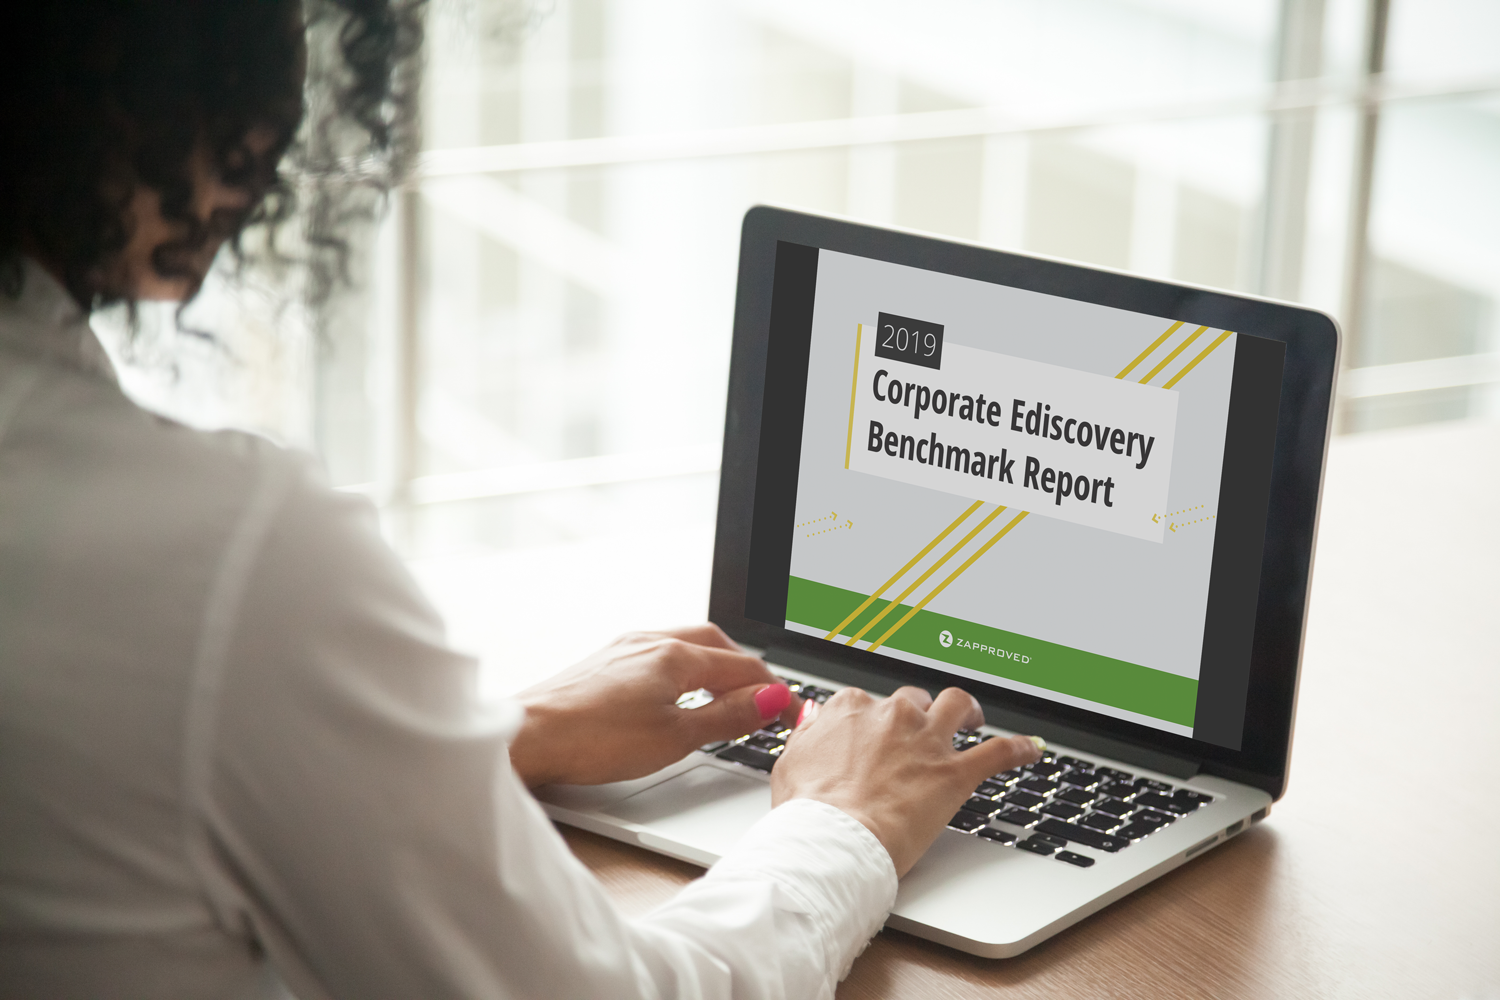 2019 Corporate Ediscovery Benchmark Report | Zapproved